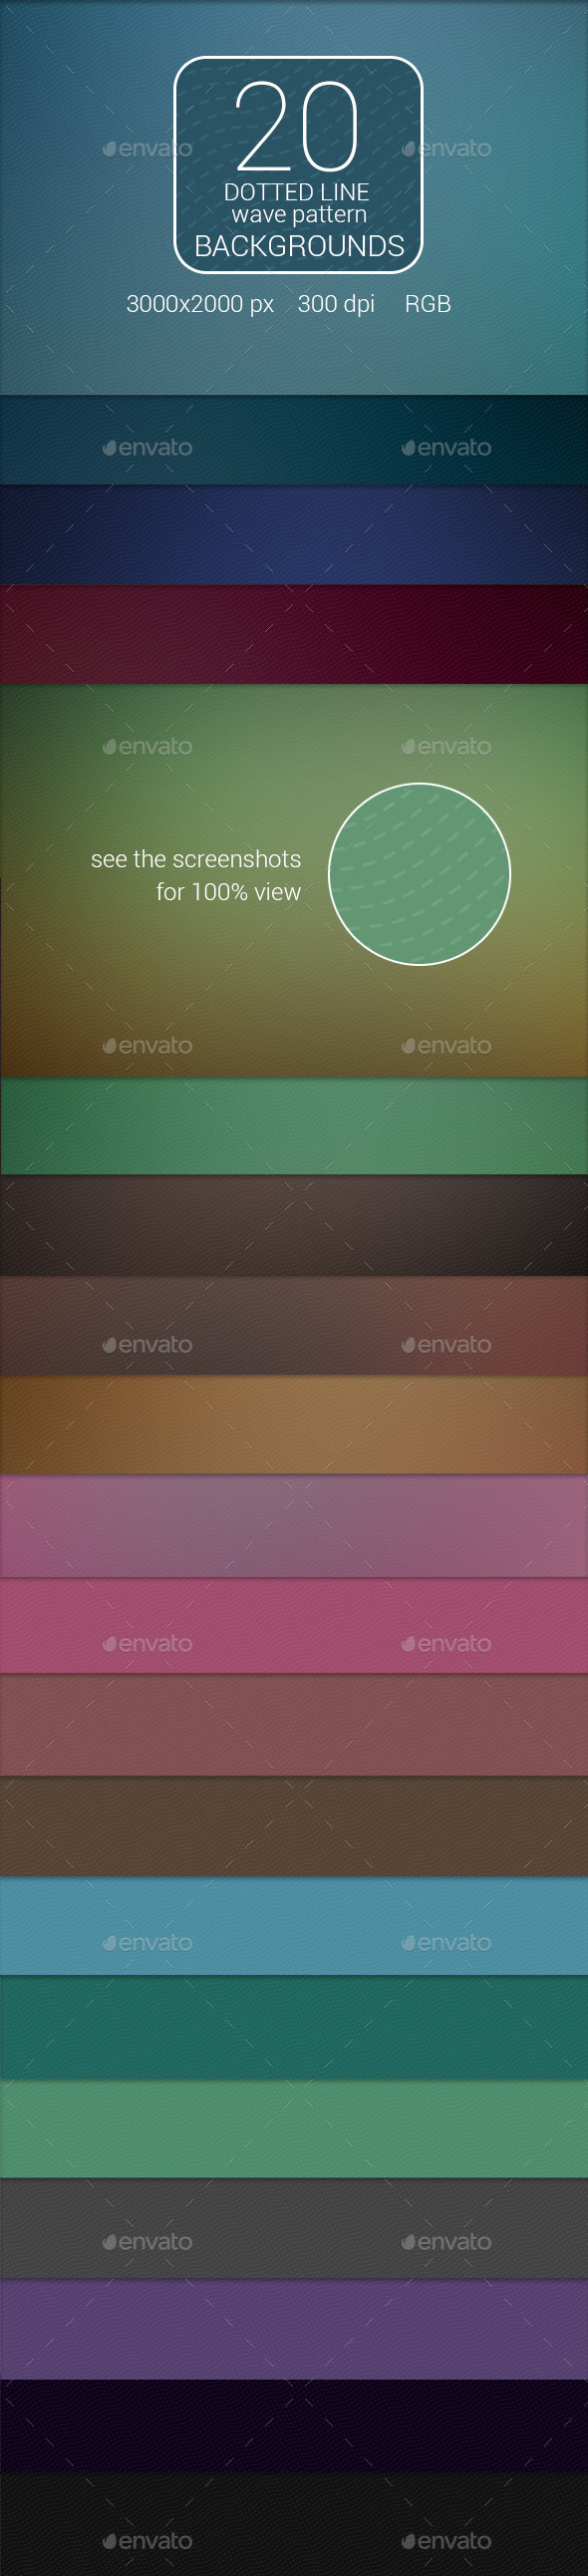 GraphicRiver 20 Dotted Line Wave Pattern Backgrounds 9211494